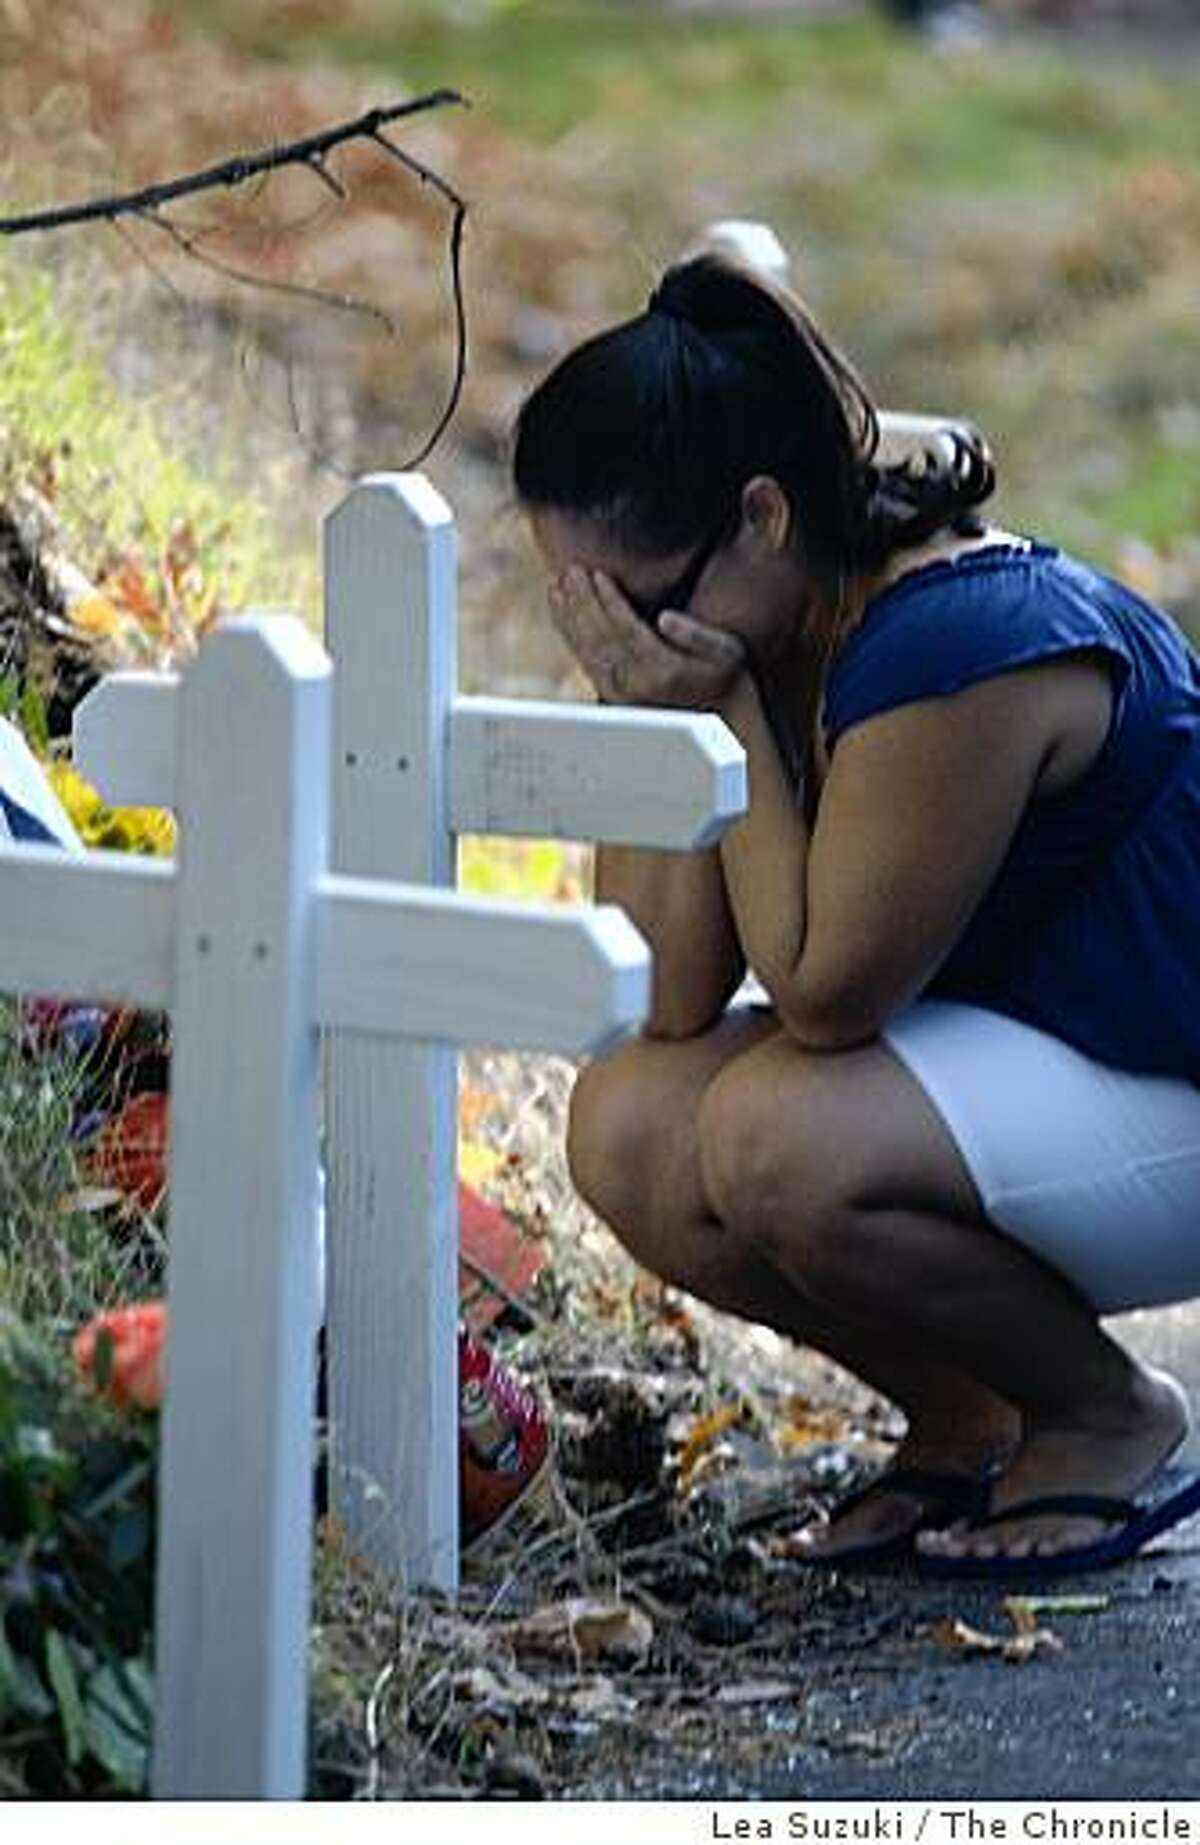 On Sunday, November 16, 2008 near Angwin, Calif. Desiree Quijano, 21, Pacific Union College senior, buries her face in her hands while visiting the makeshift memorial on Deer Park Road where 4 Pacific Union College students were killed in a crash on Saturday evening.